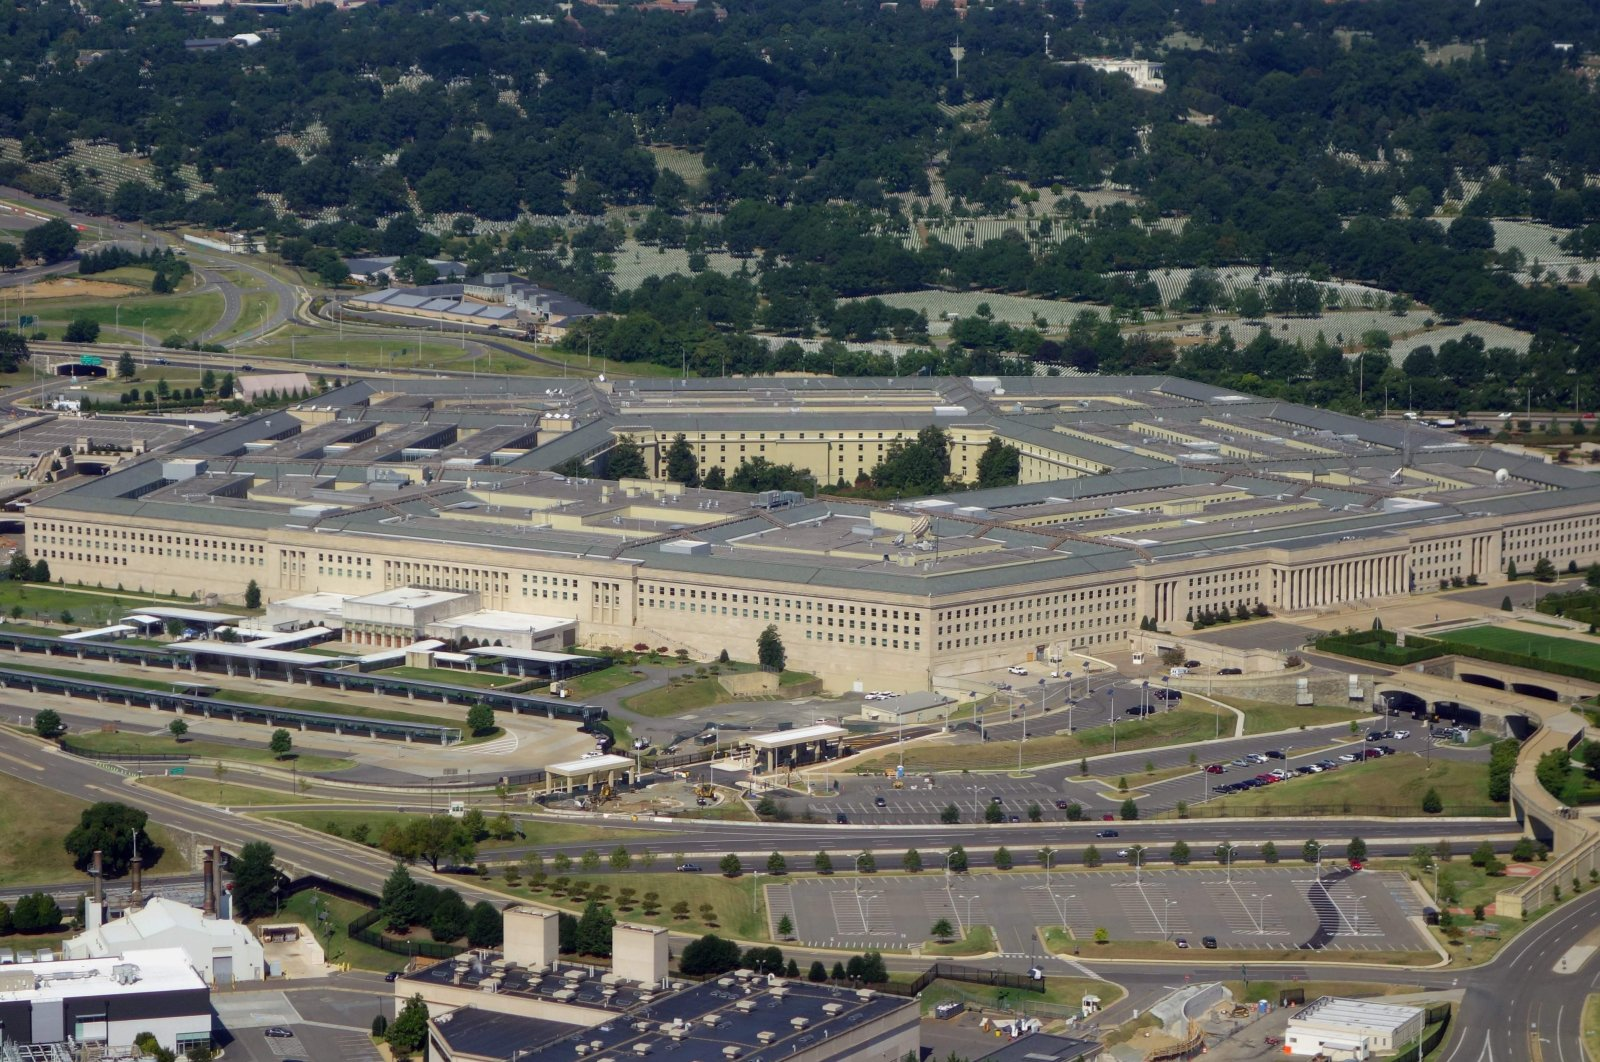 The Pentagon is seen from the air over Washington, D.C., Aug. 25, 2013. (AFP Photo)